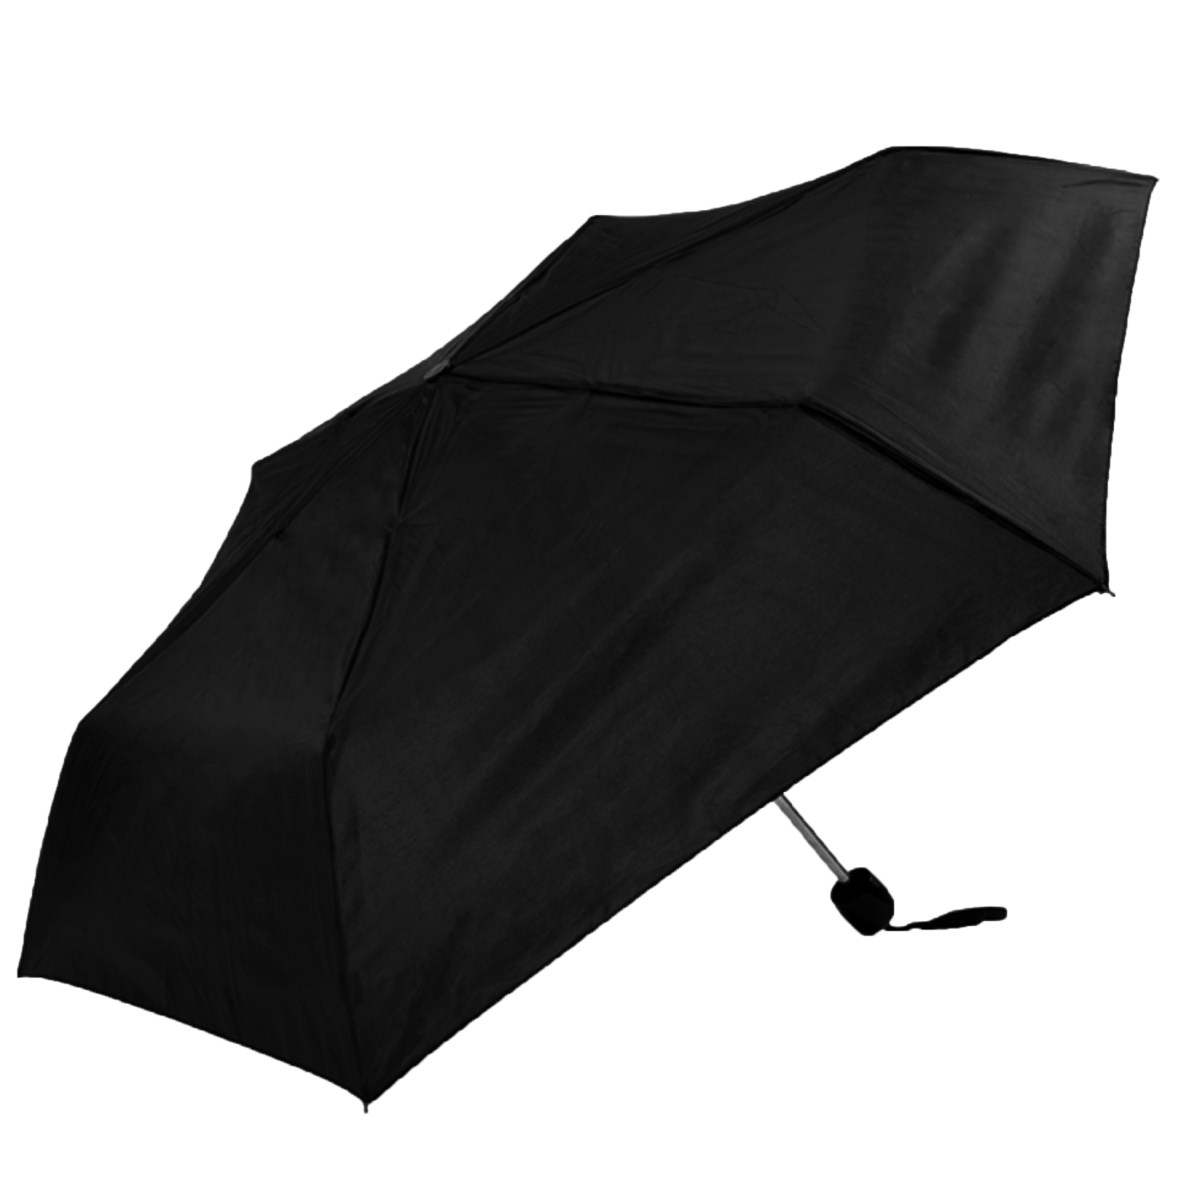 Unisex Black Basic Compact Umbrella (3501B)